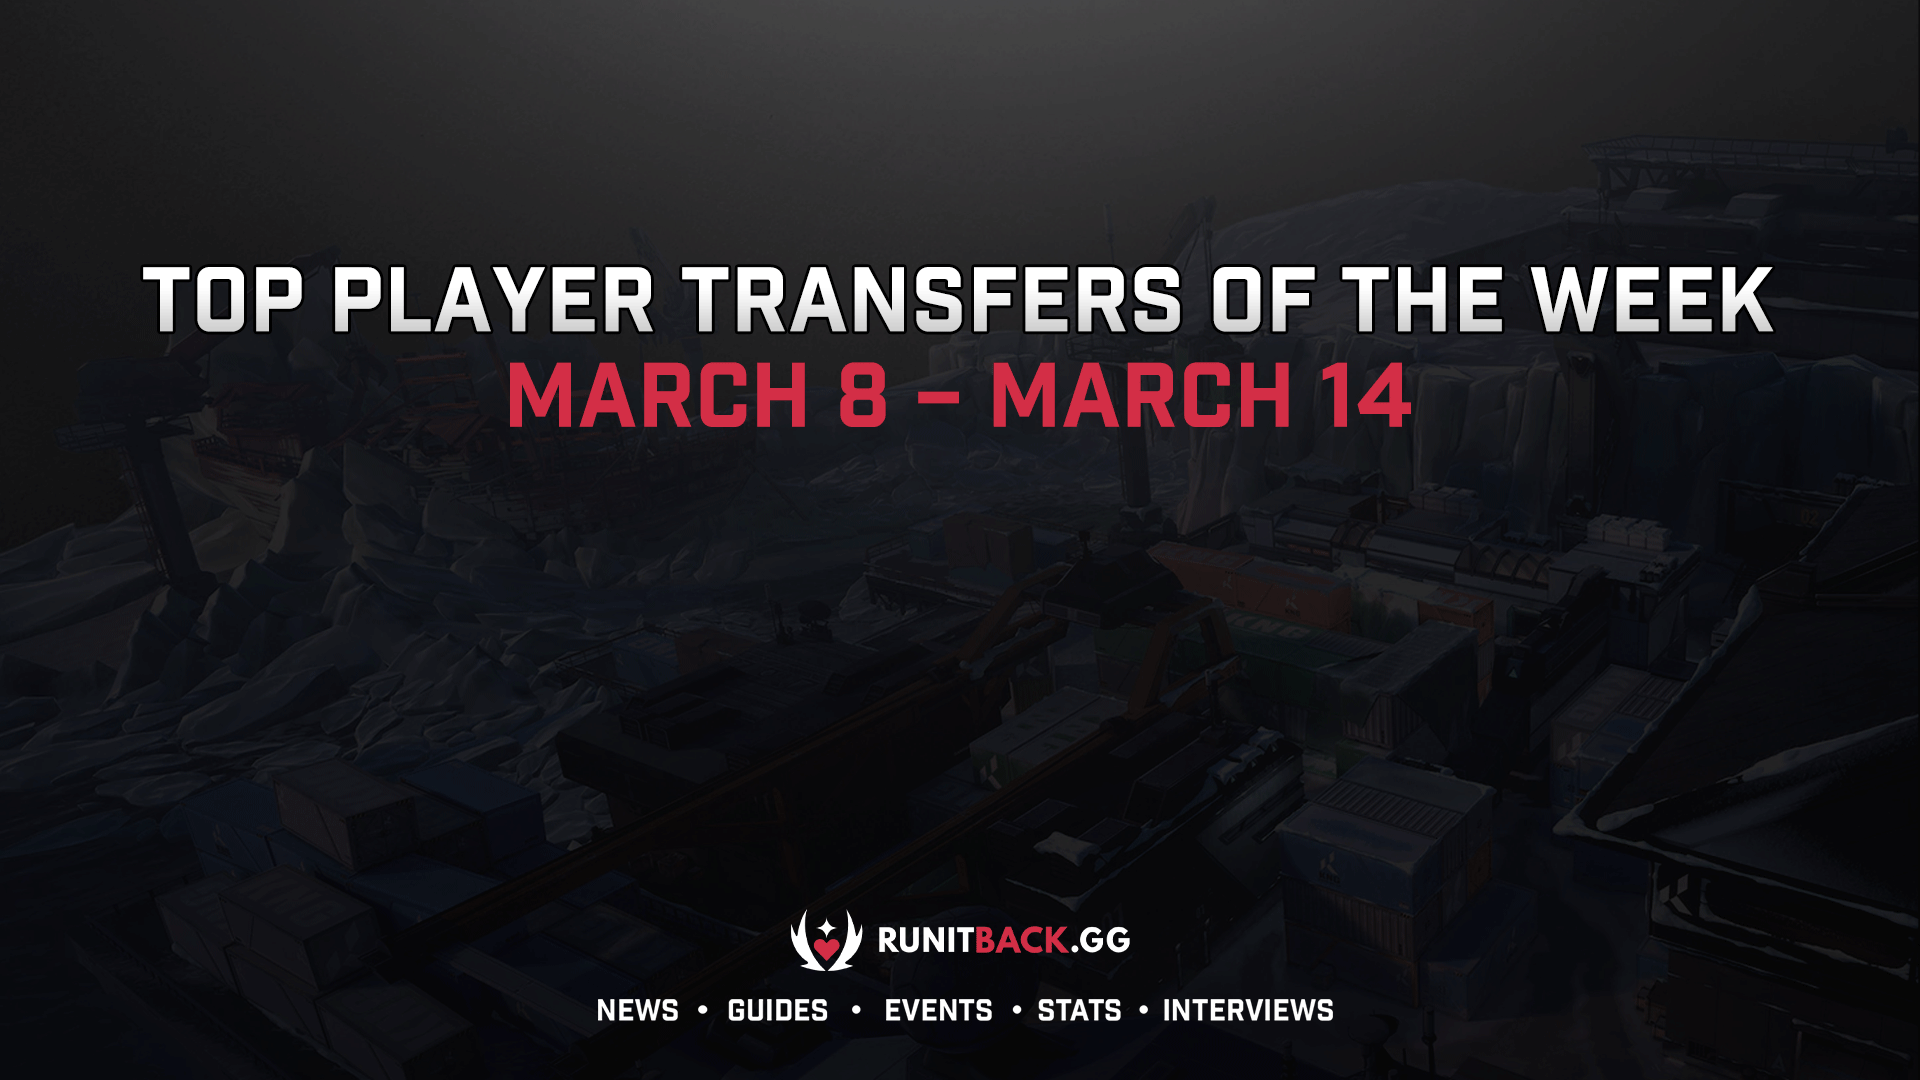 Top Player Transfers of the Week: March 8 – March 14